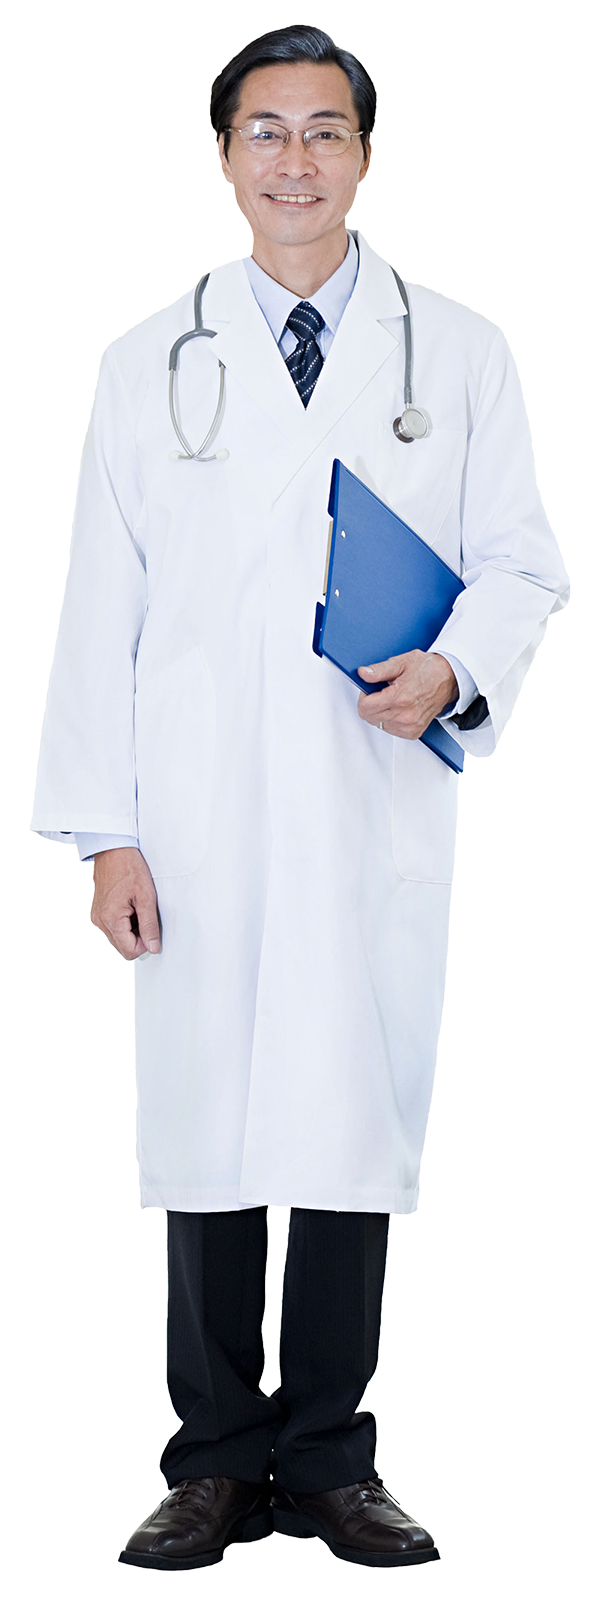 Person in hospital clothing with arms folded